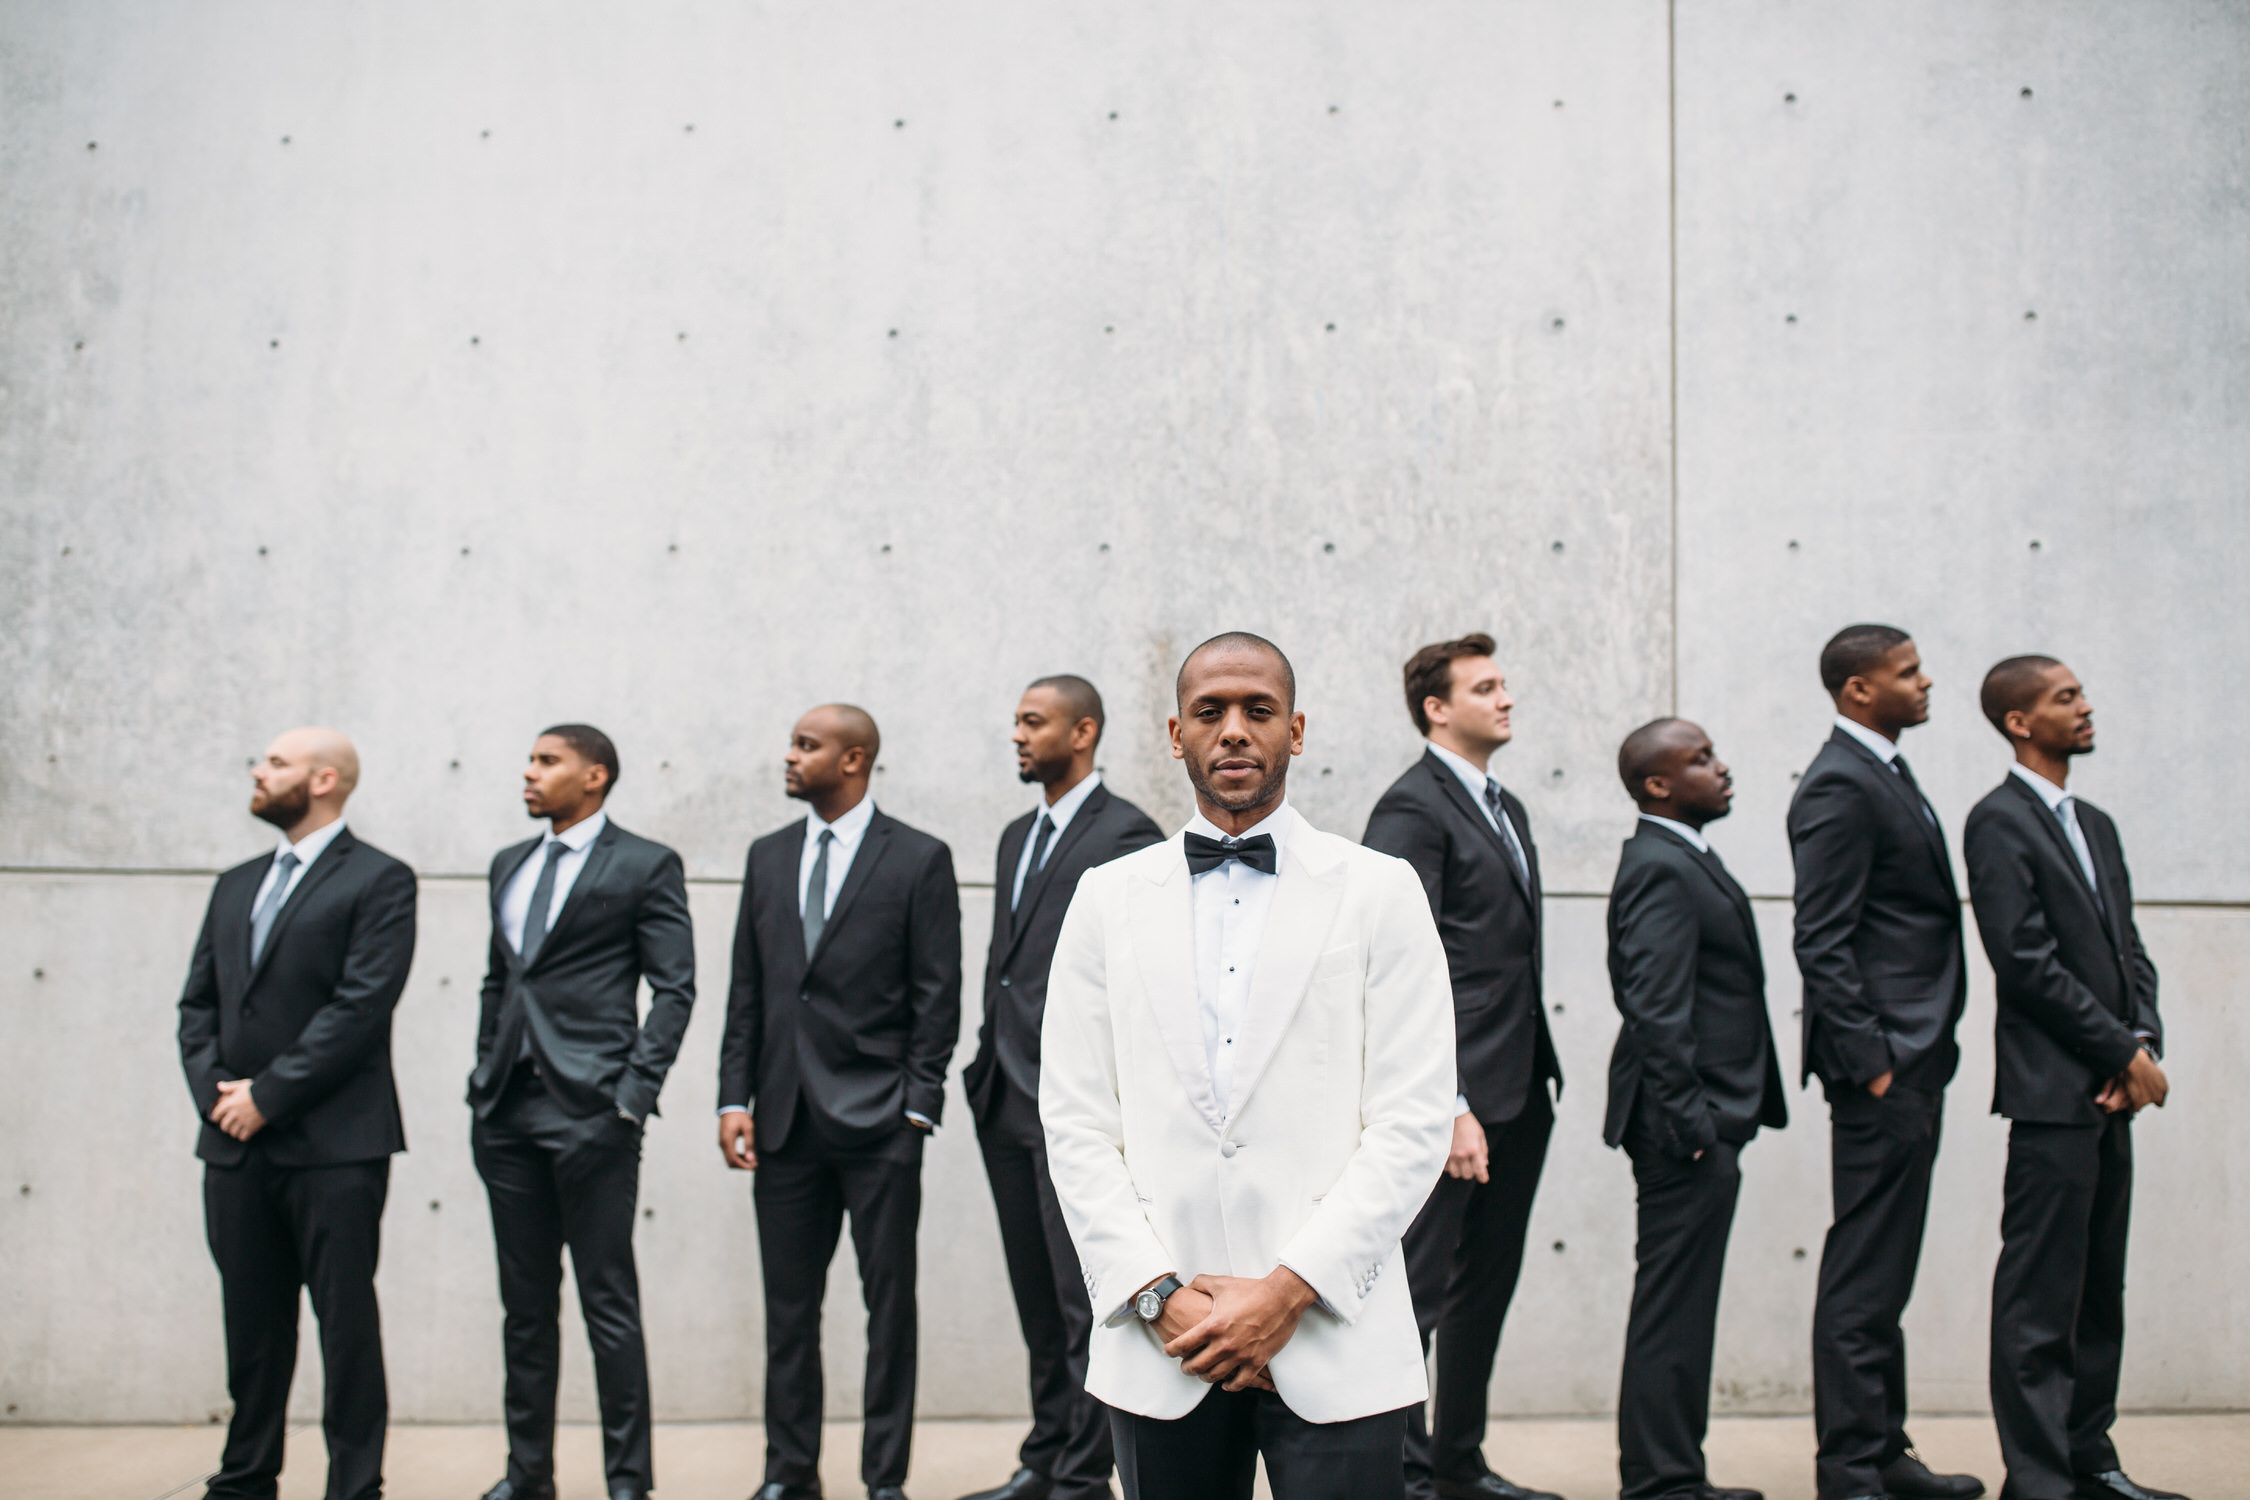 Wedding party photos, group photos at a wedding, groom and groomsmen, relaxed wedding photos, St Louis Wedding Photographer